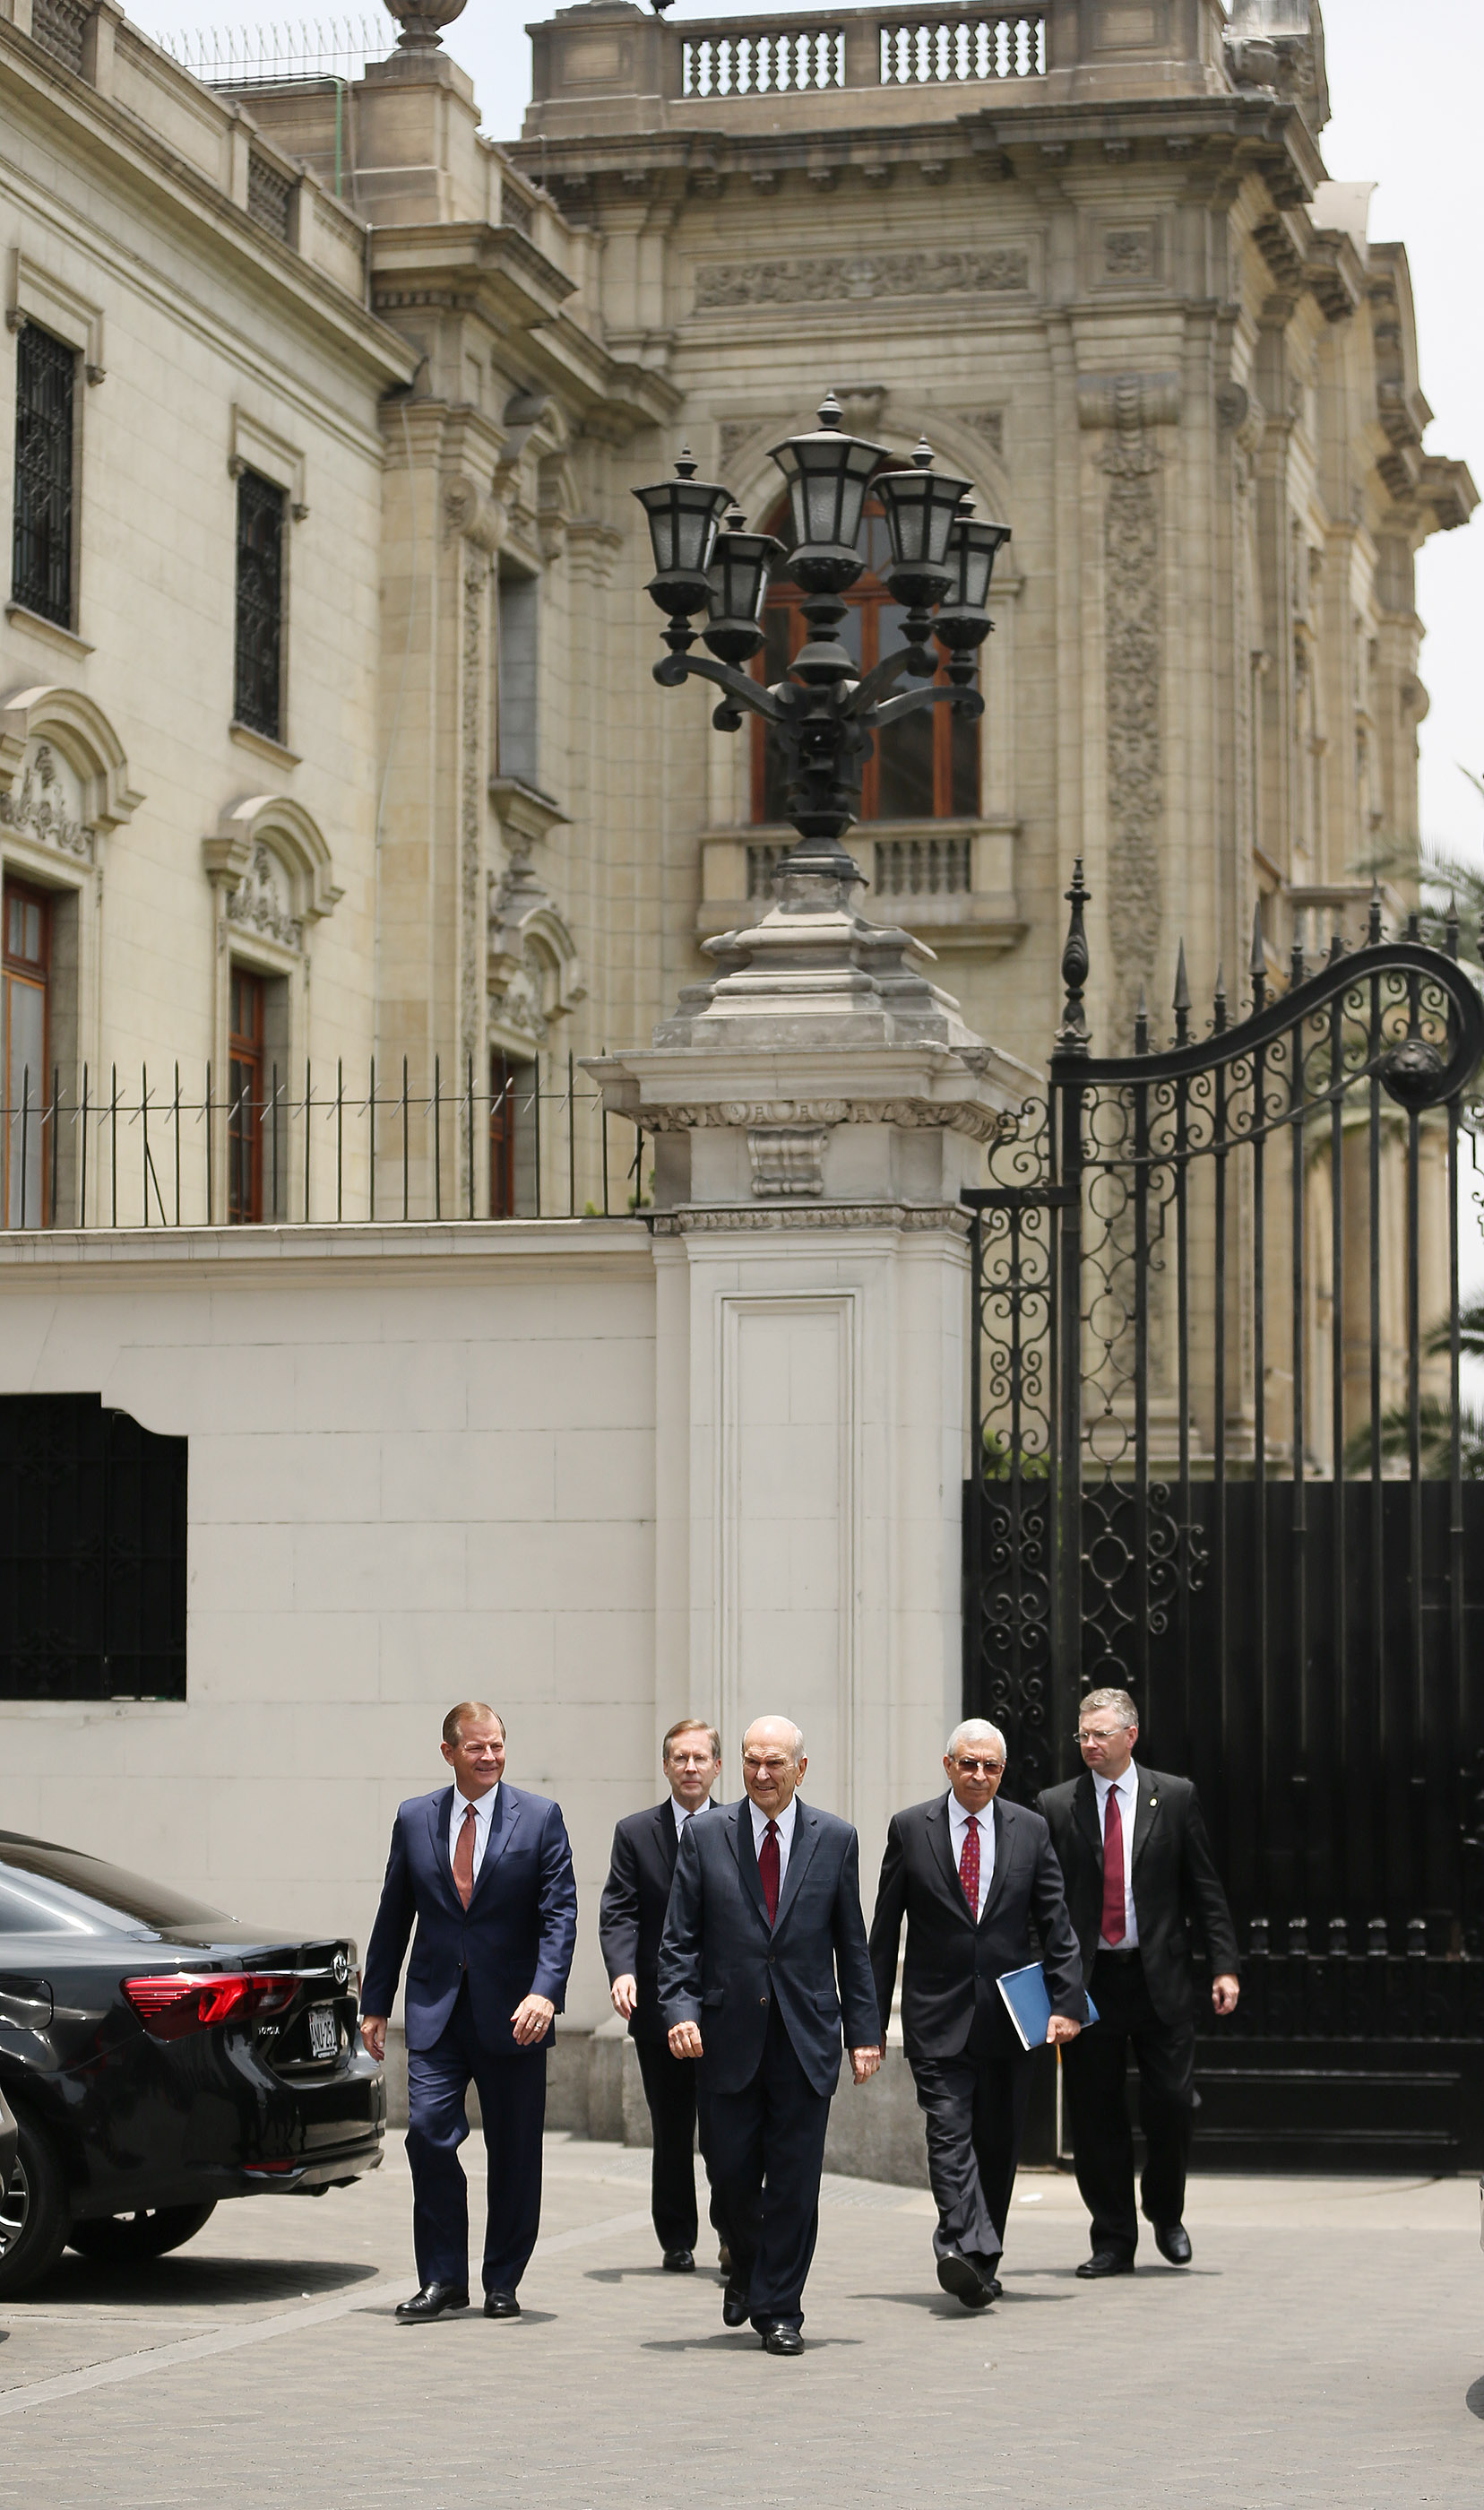 President Russell M. Nelson of The Church of Jesus Christ of Latter-day Saints, center, Elder Gary E. Stevenson of the Quorum of the Twelve Apostles, left, and Elder Enrique Falabella, General Authority Seventy, leave the Government Palace after speaking with the president of Peru in Lima, Peru on Oct. 20, 2018.